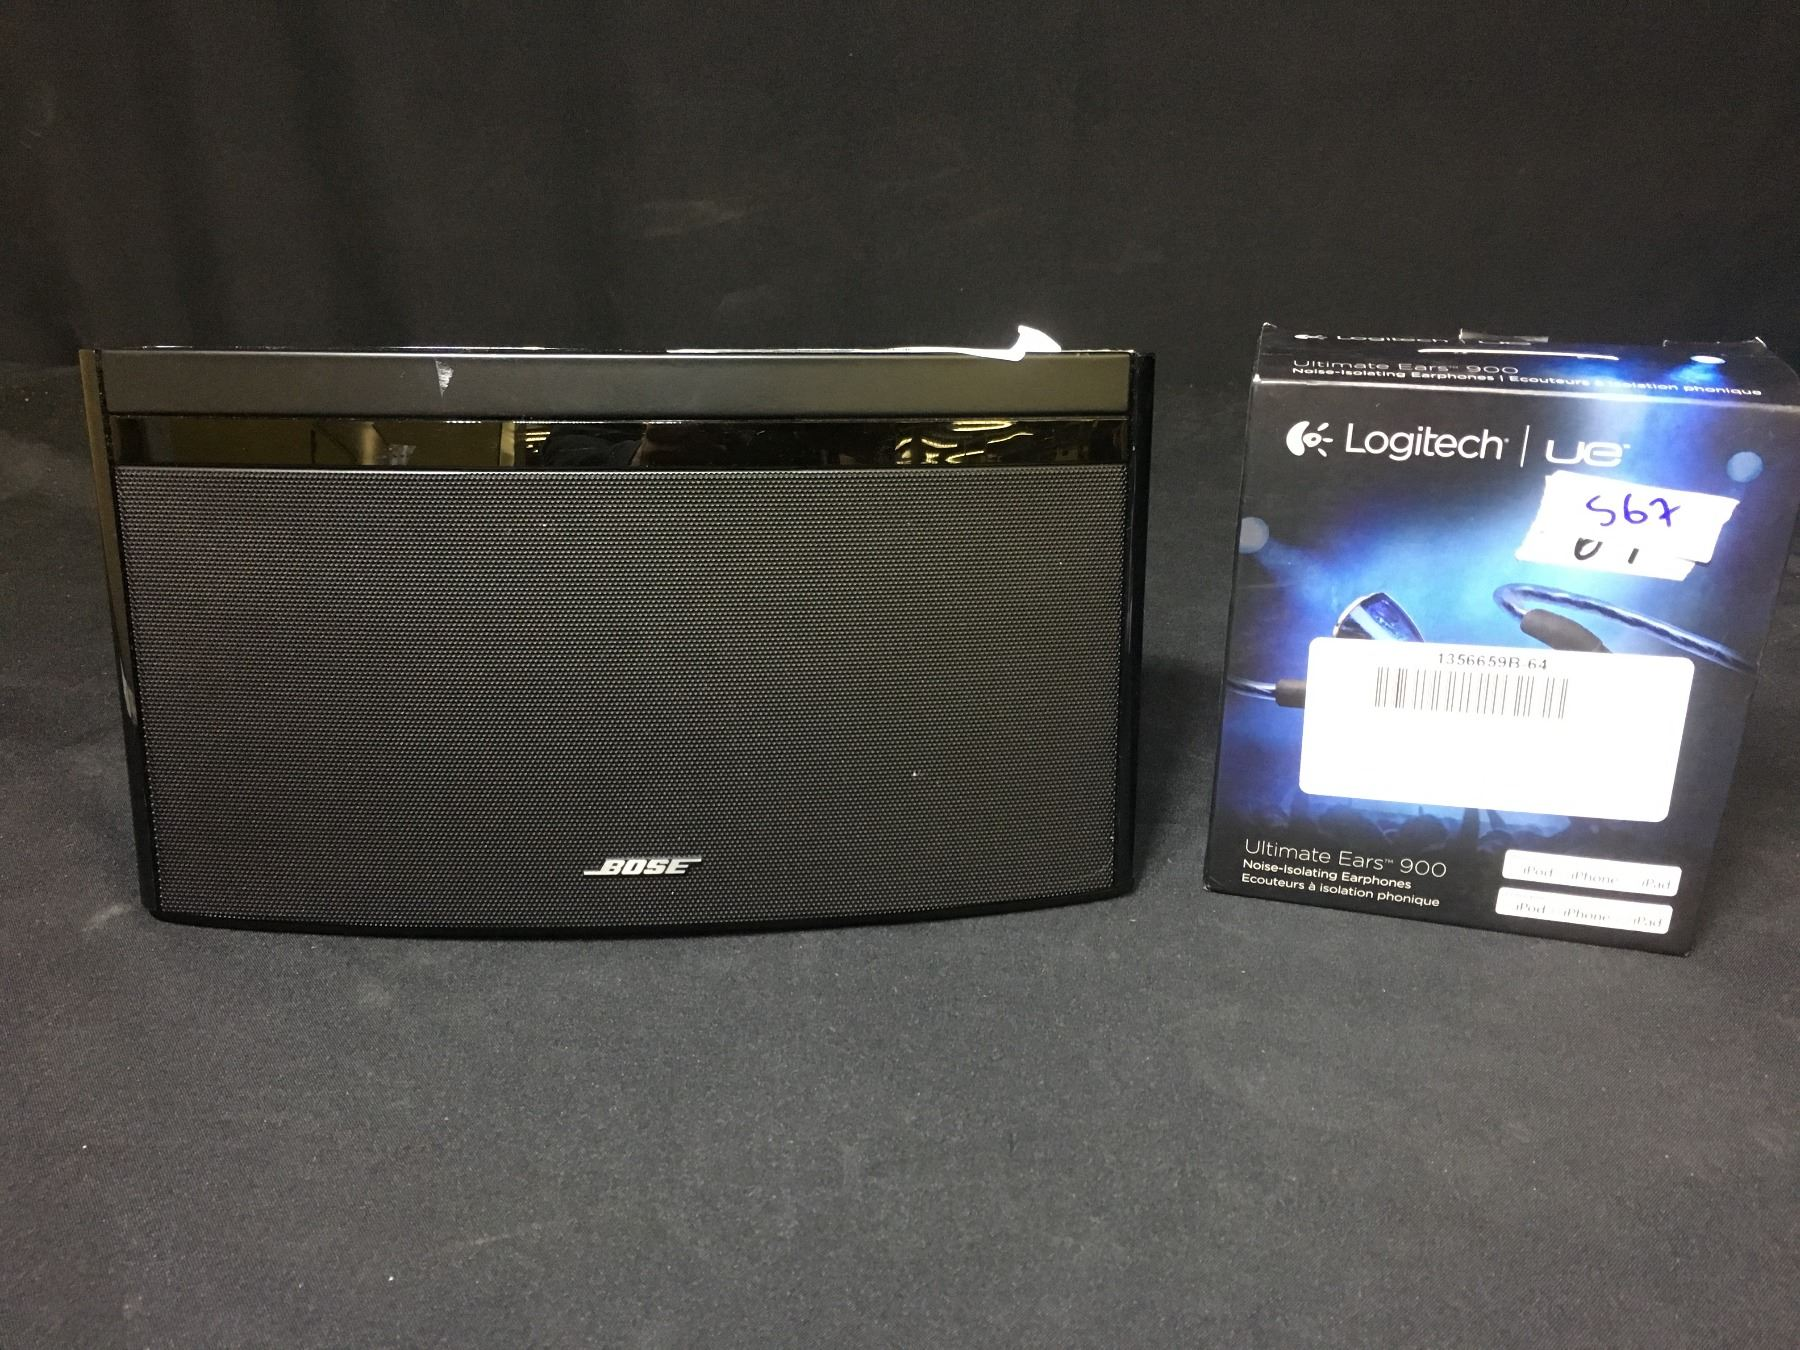 bose soundlink air digital music system manual